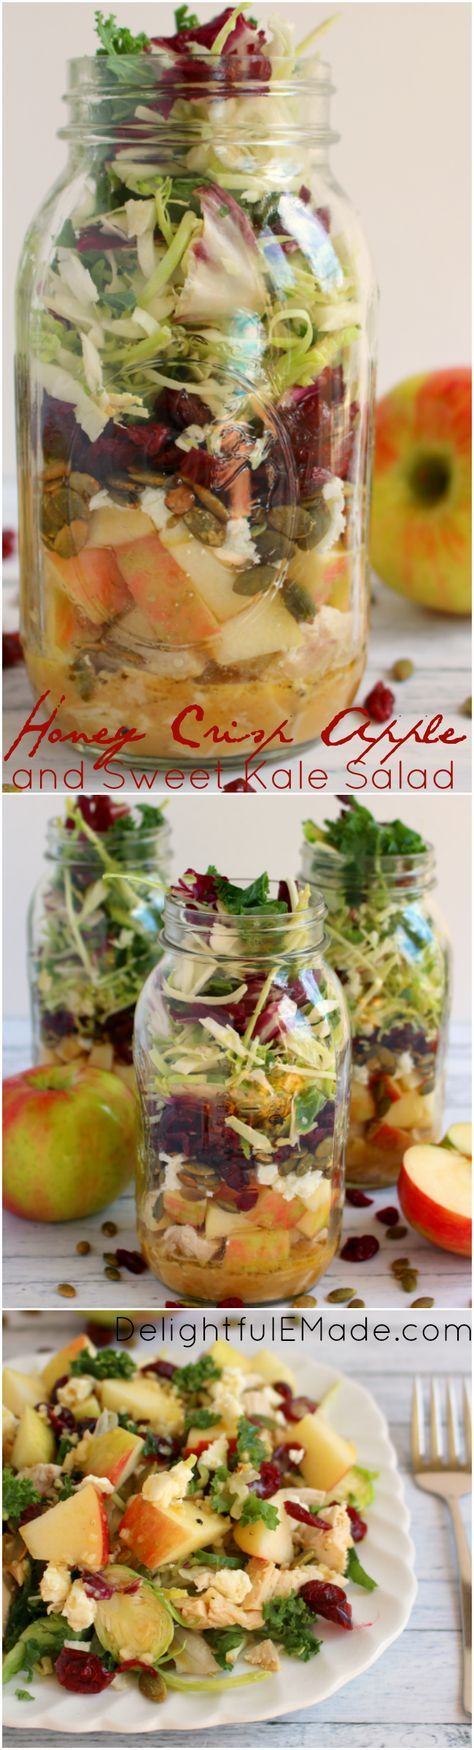 How about a healthy, easy delicious lunch idea? My Honey Crisp Apple & Sweet Kale Salad with Apple Cider Vinaigrette is the perfect lunch solution! Assembled in mason jars, these salads stay fresh and crisp for the perfect make-head lunch! #ad #EatSmartVeggies @EatSmartVeggies